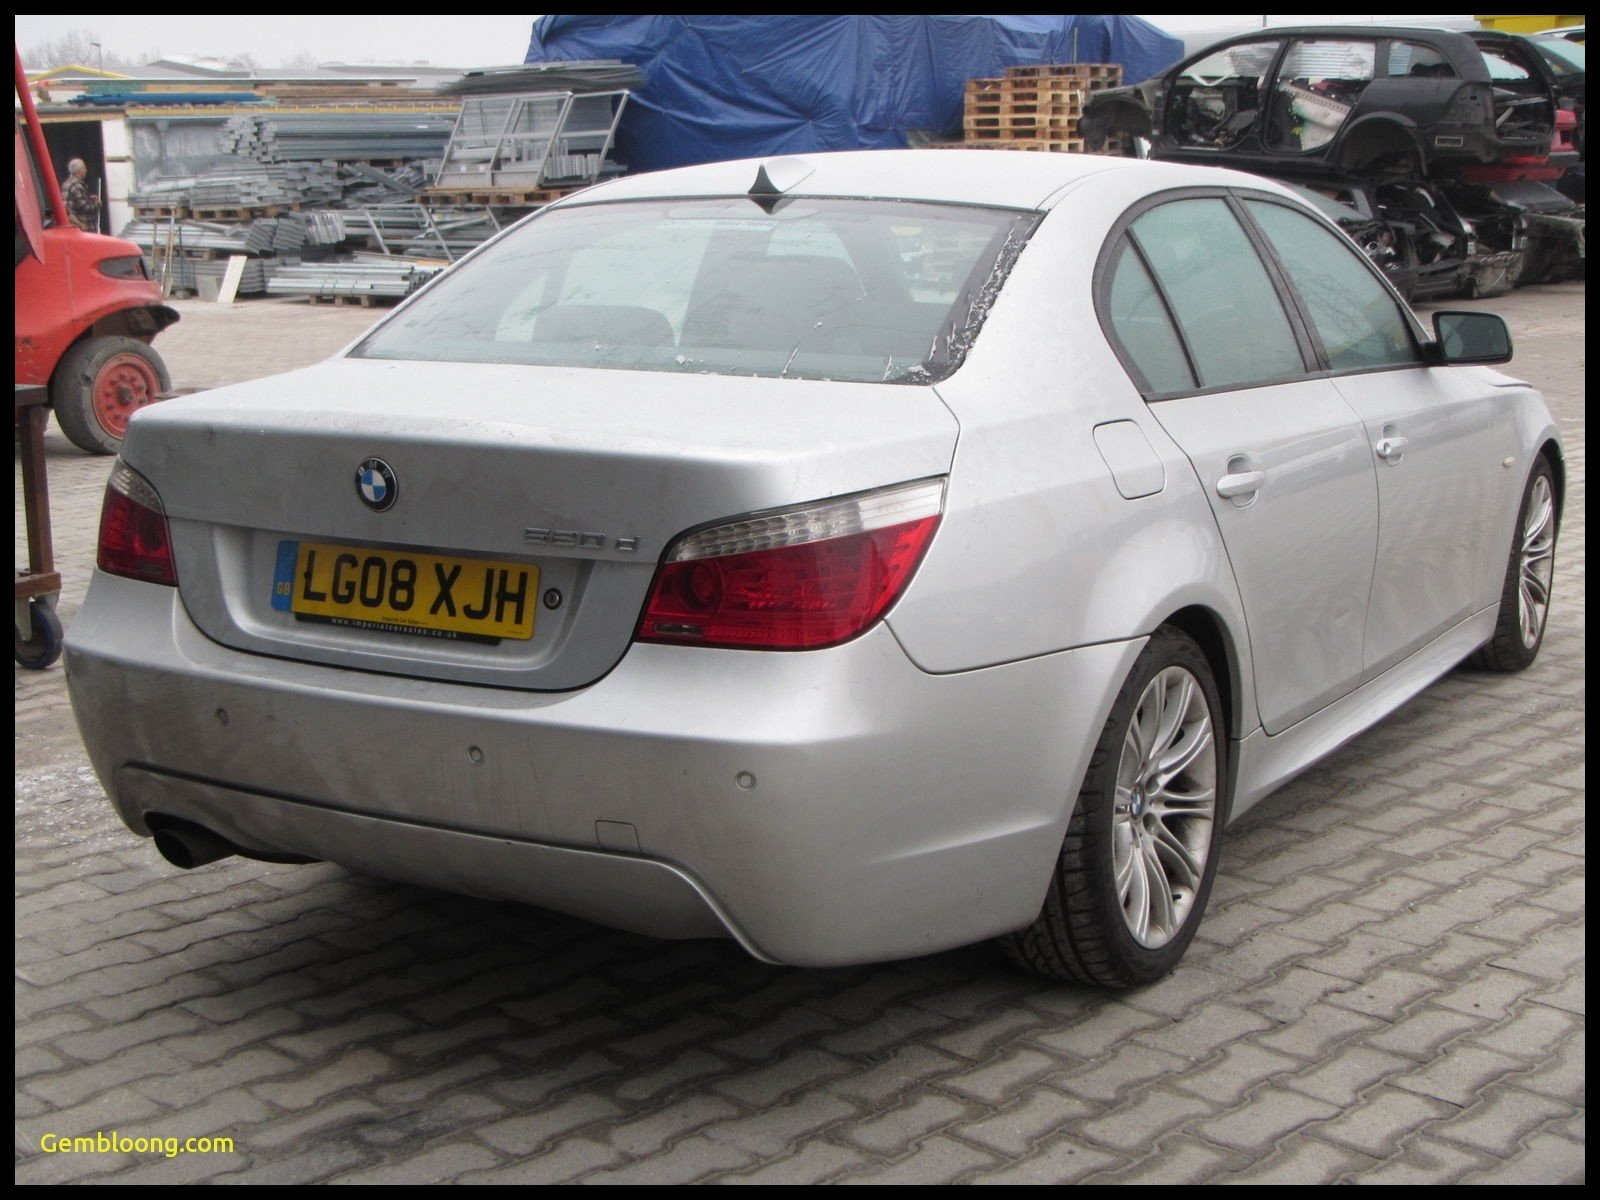 530i Bmw 2006 Awesome Lovely Bmw 530i